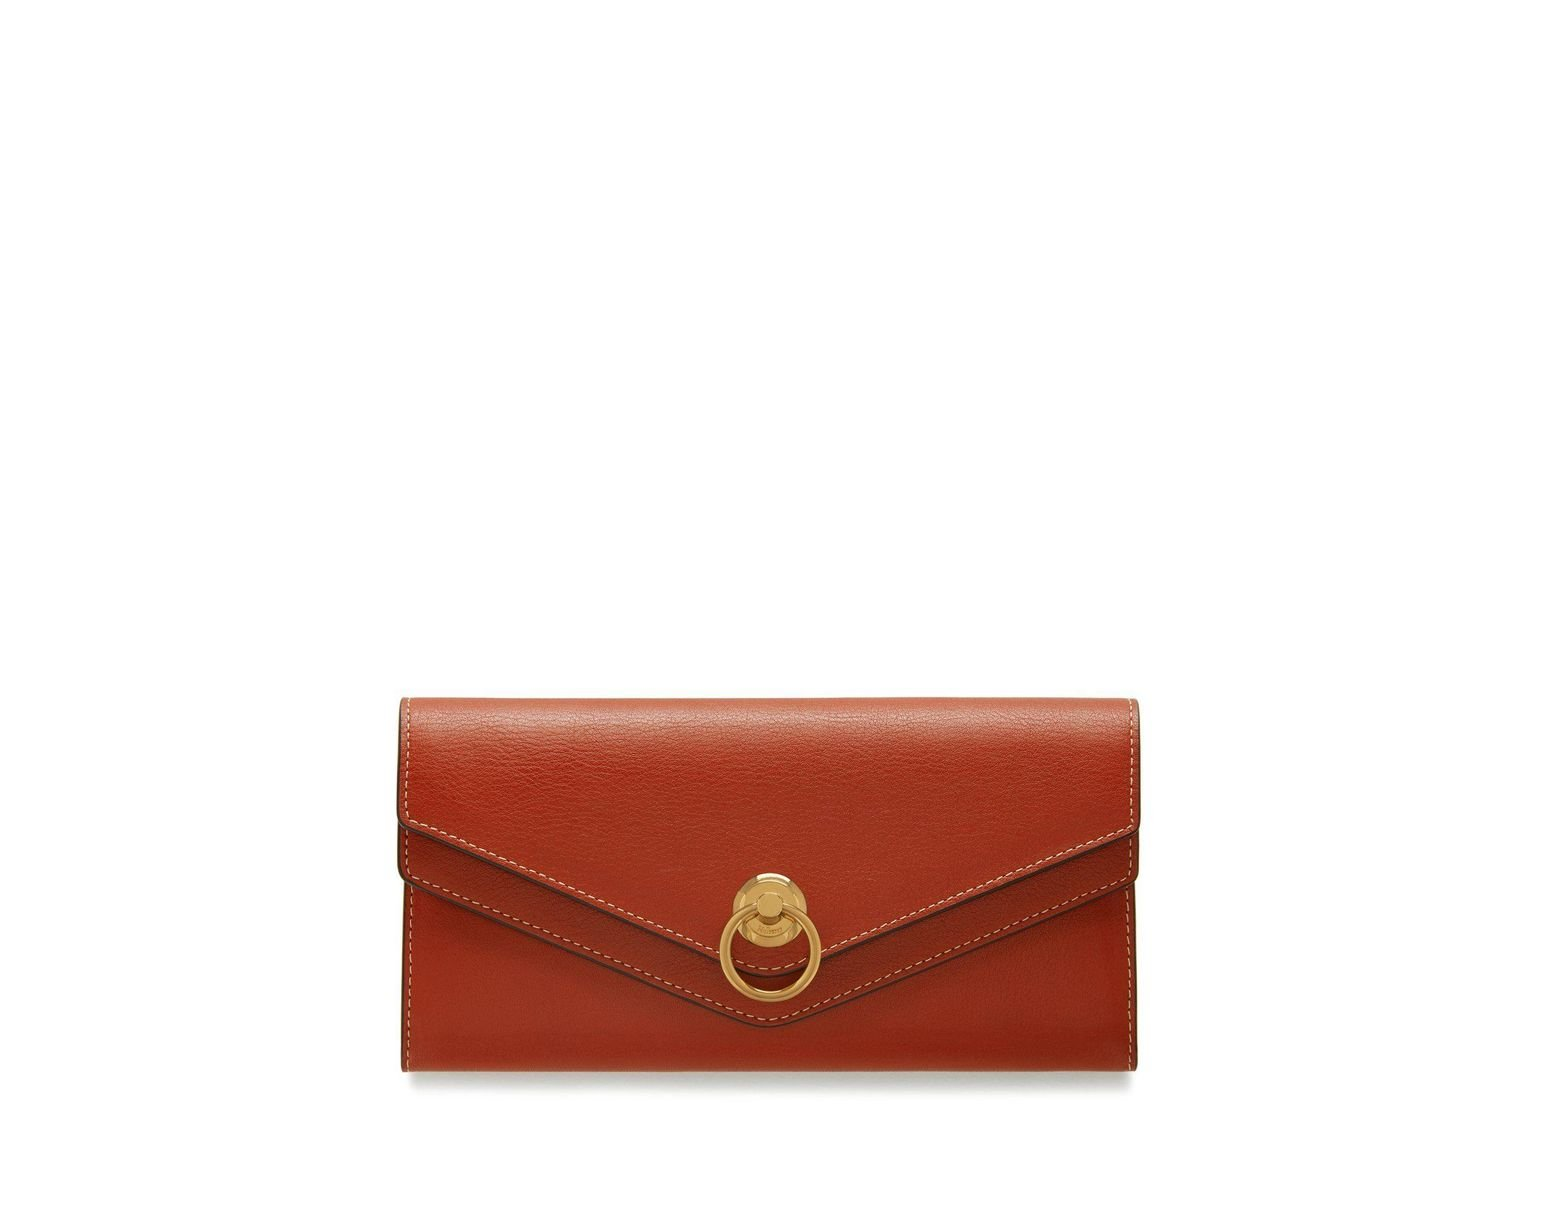 Mulberry Leather Harlow Long Wallet In Rust Silky Calf in